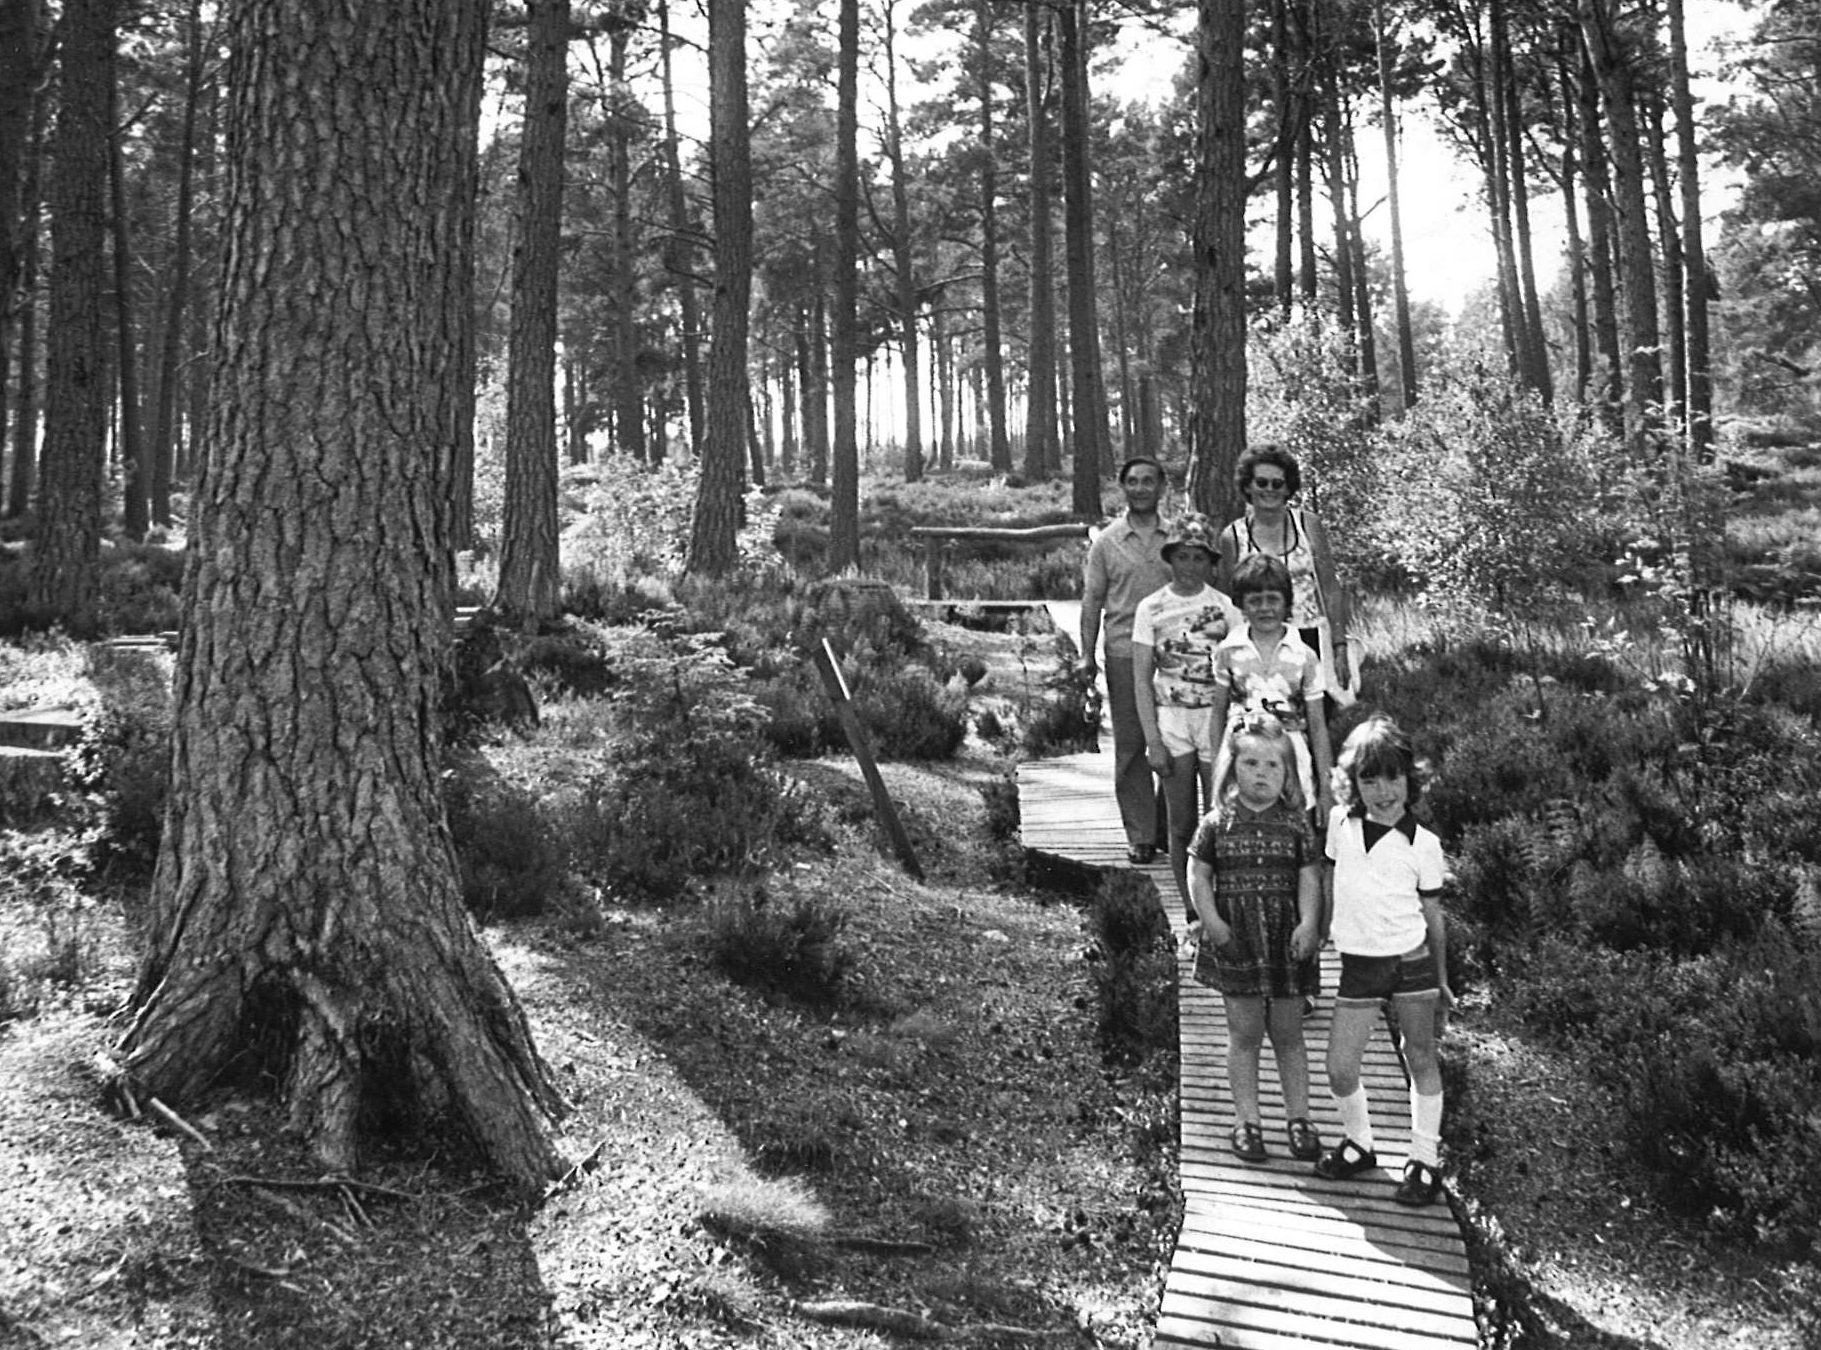 A family enjoythe nature trail at Landmark, 1977